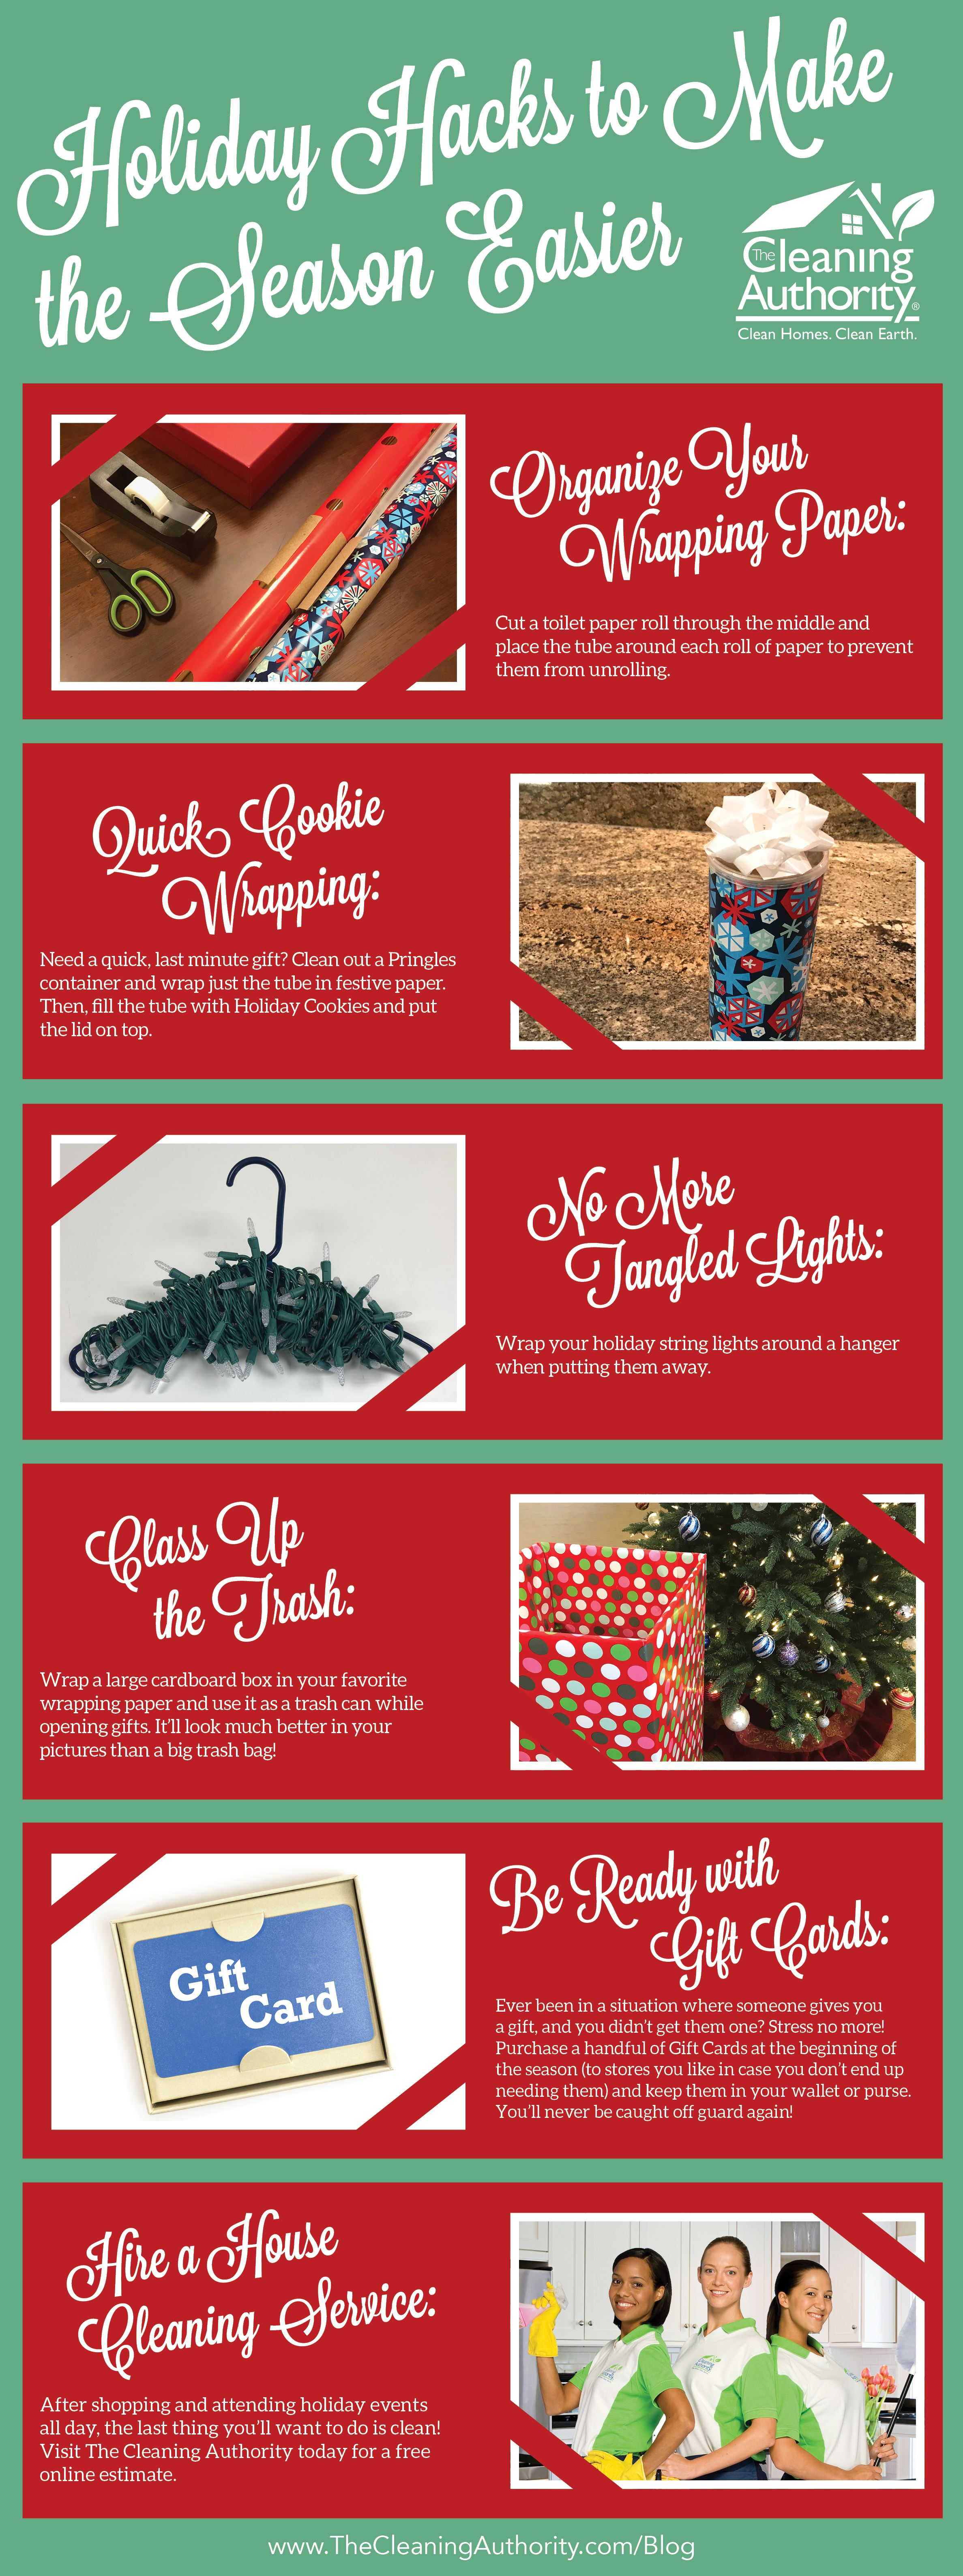 Holiday Hacks to Make the Season Easier infographic